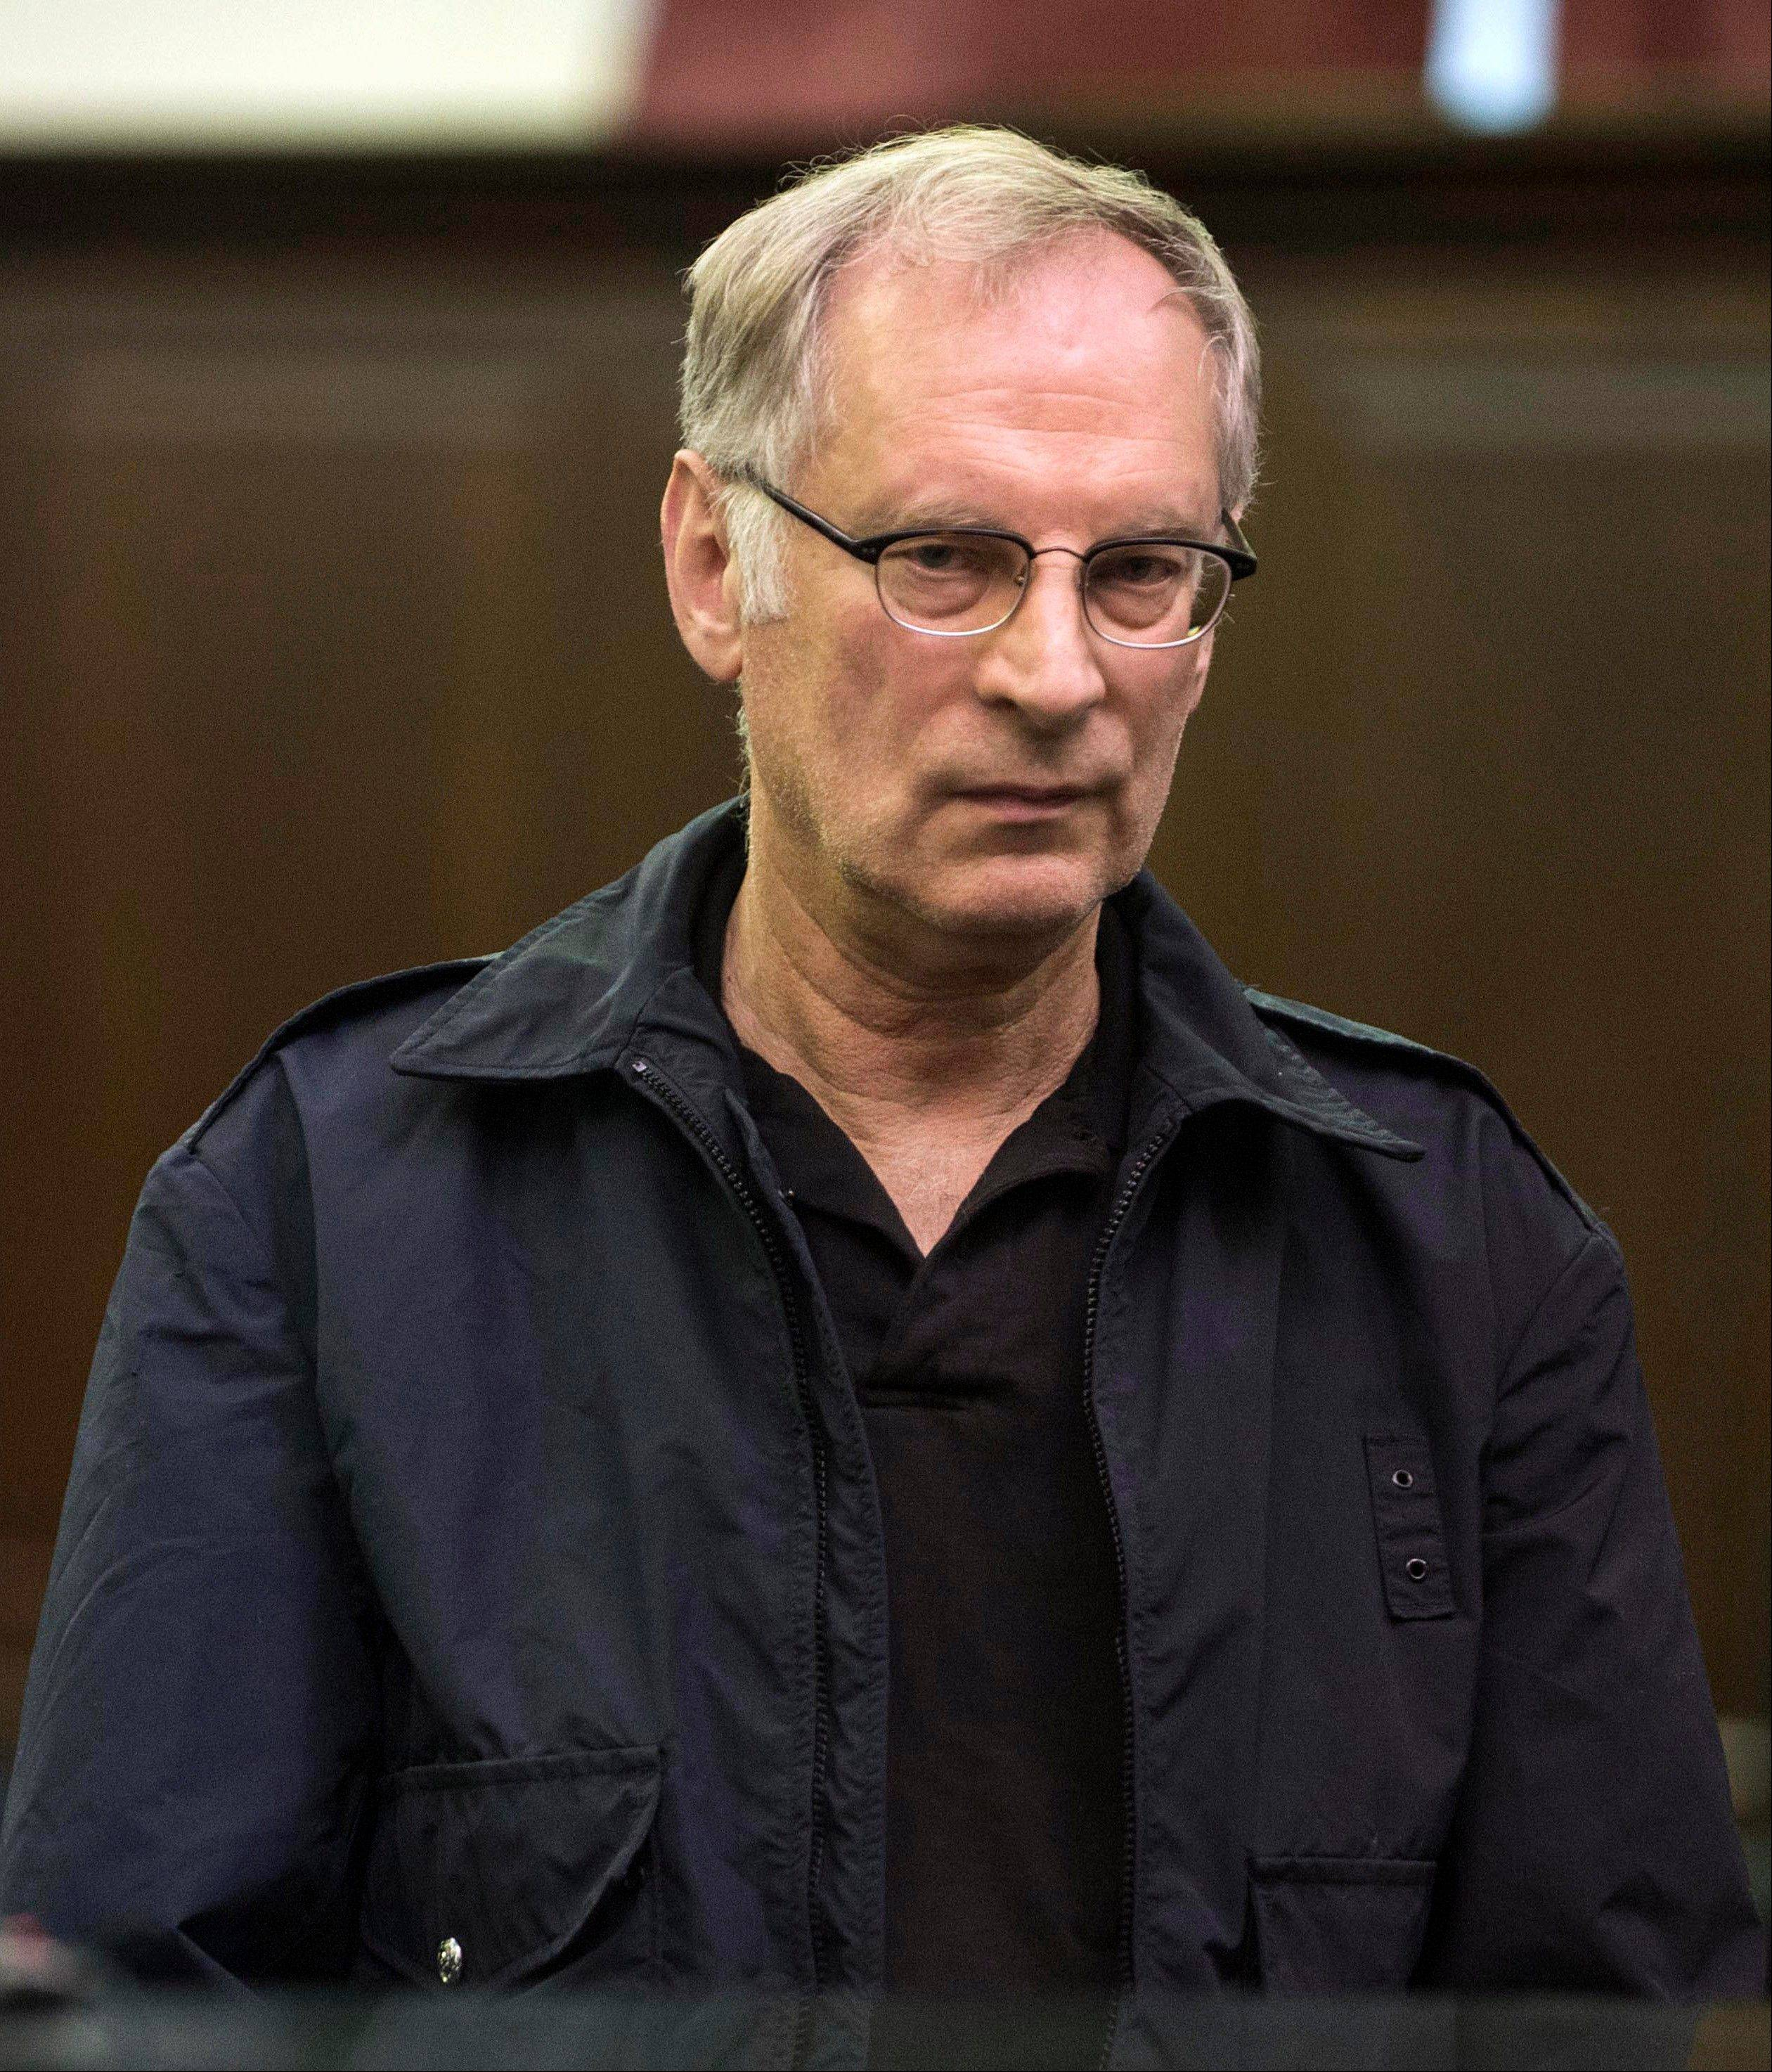 Bernard Goetz is arraigned Saturday in Manhattan criminal court, in New York. Subway vigilante Goetz, who ignited a national furor over racism and gun control after he shot four youths on a train in the 1980s, was arrested on drug charges.